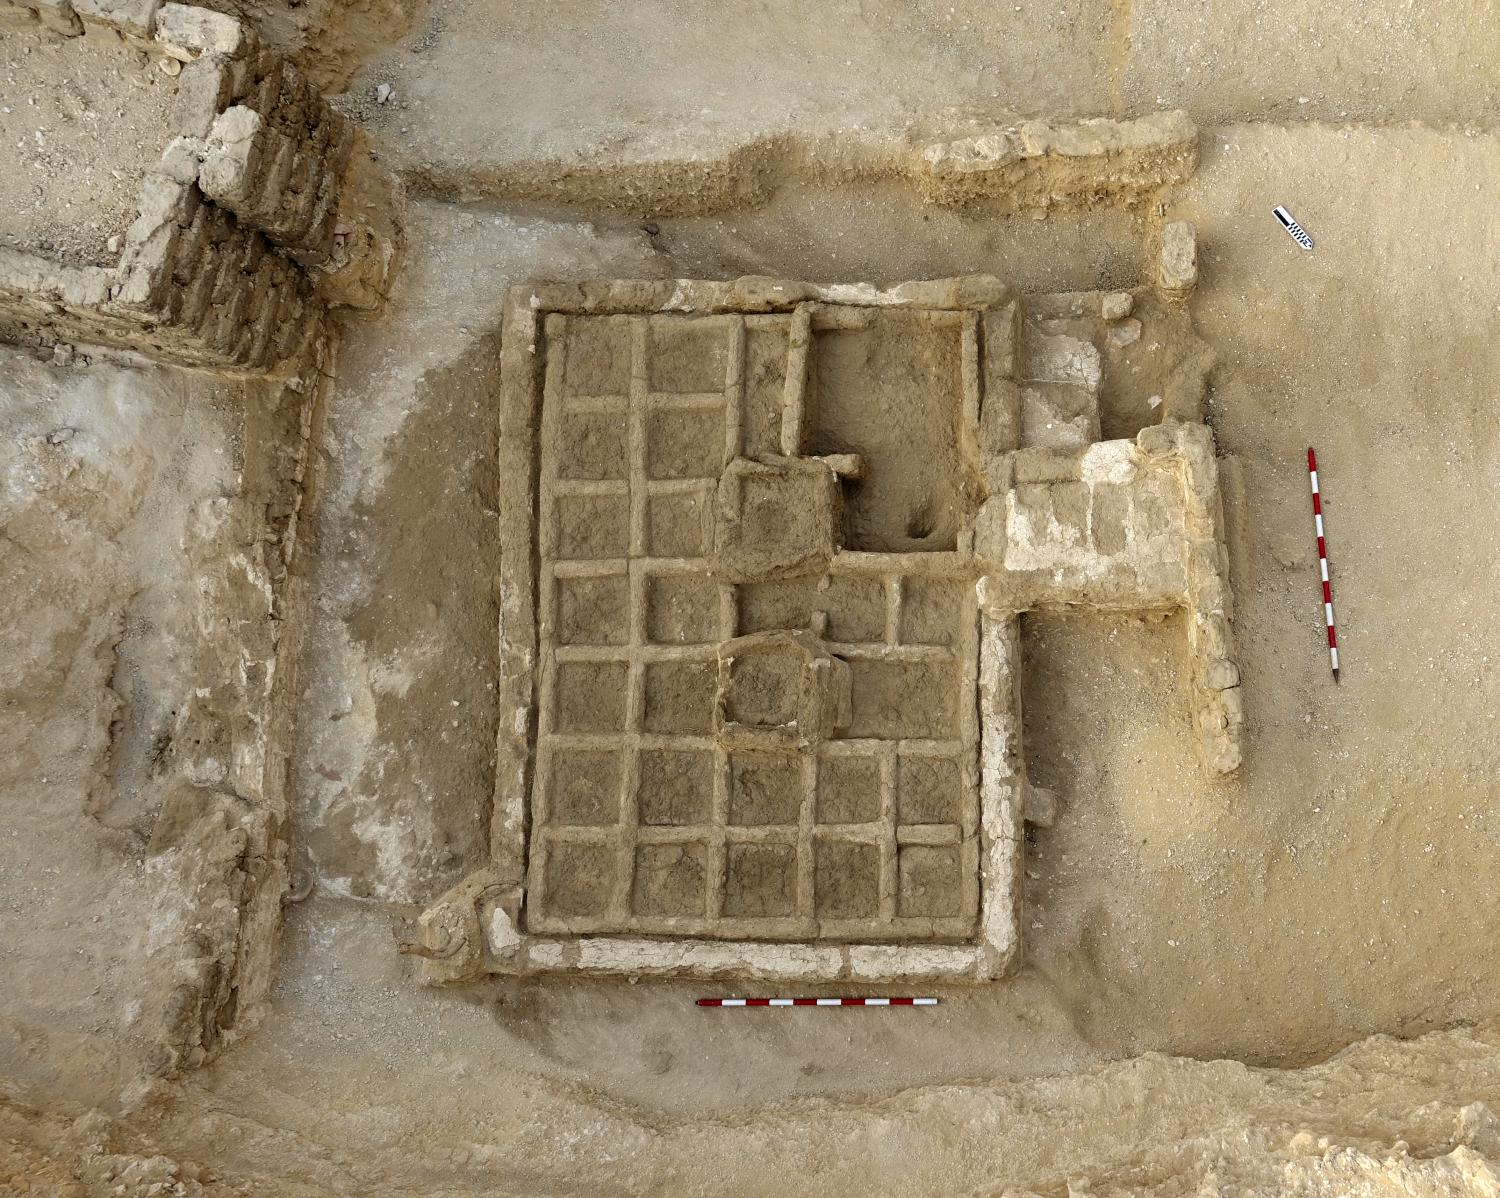 archaeologists unearth a unique funeral garden in egypt (update)